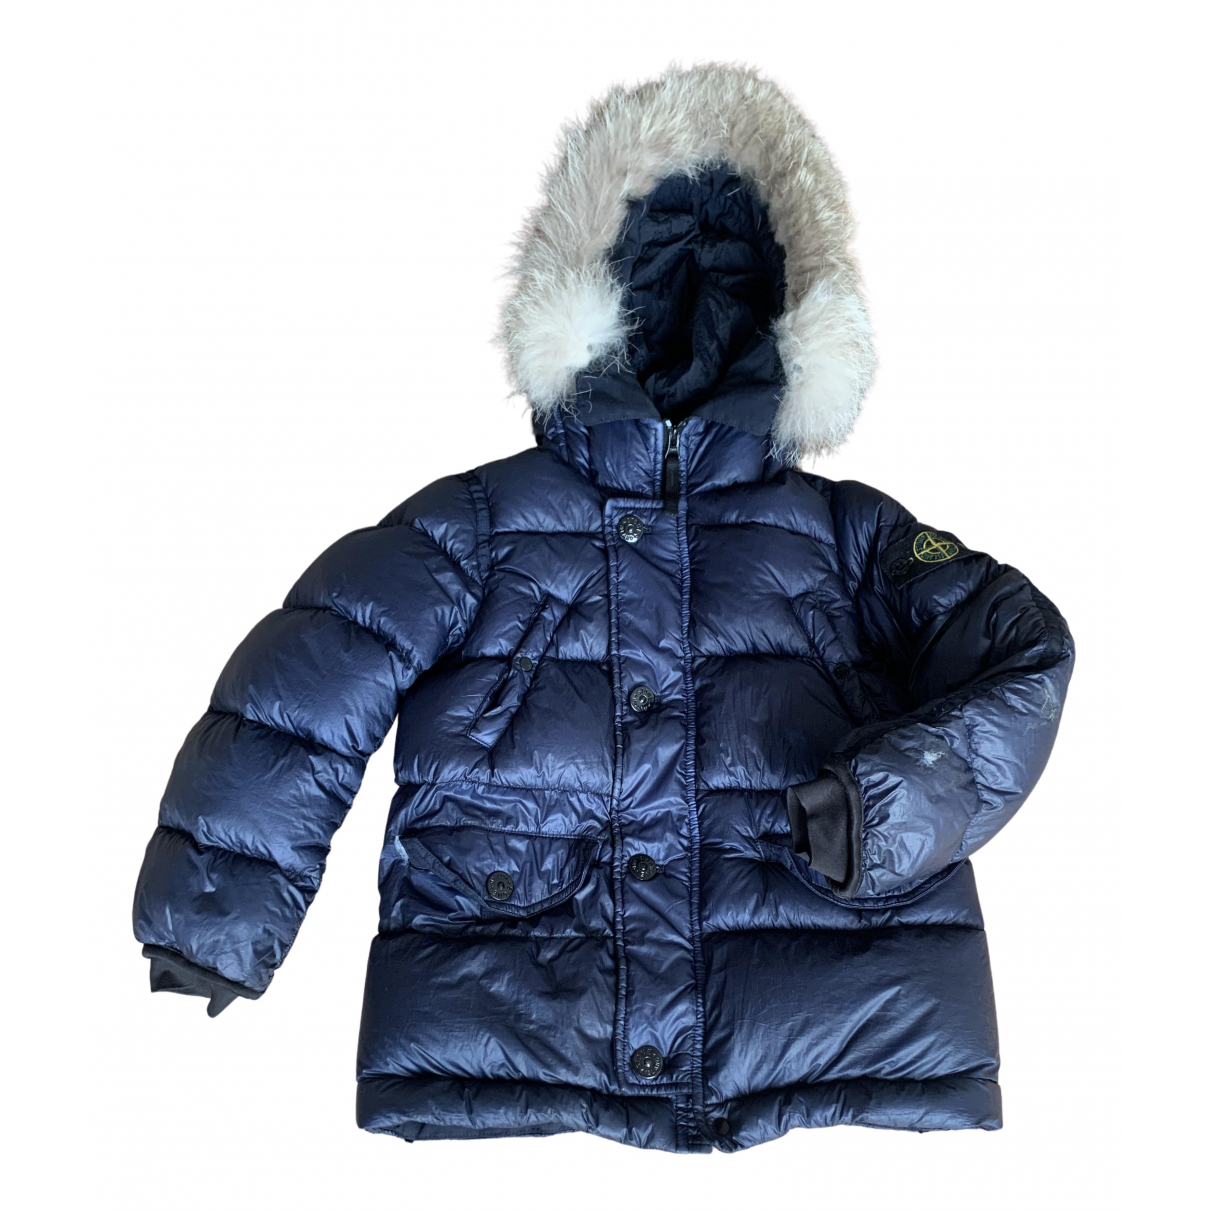 Stone Island N Blue Fur jacket & coat for Kids 6 years - up to 114cm FR